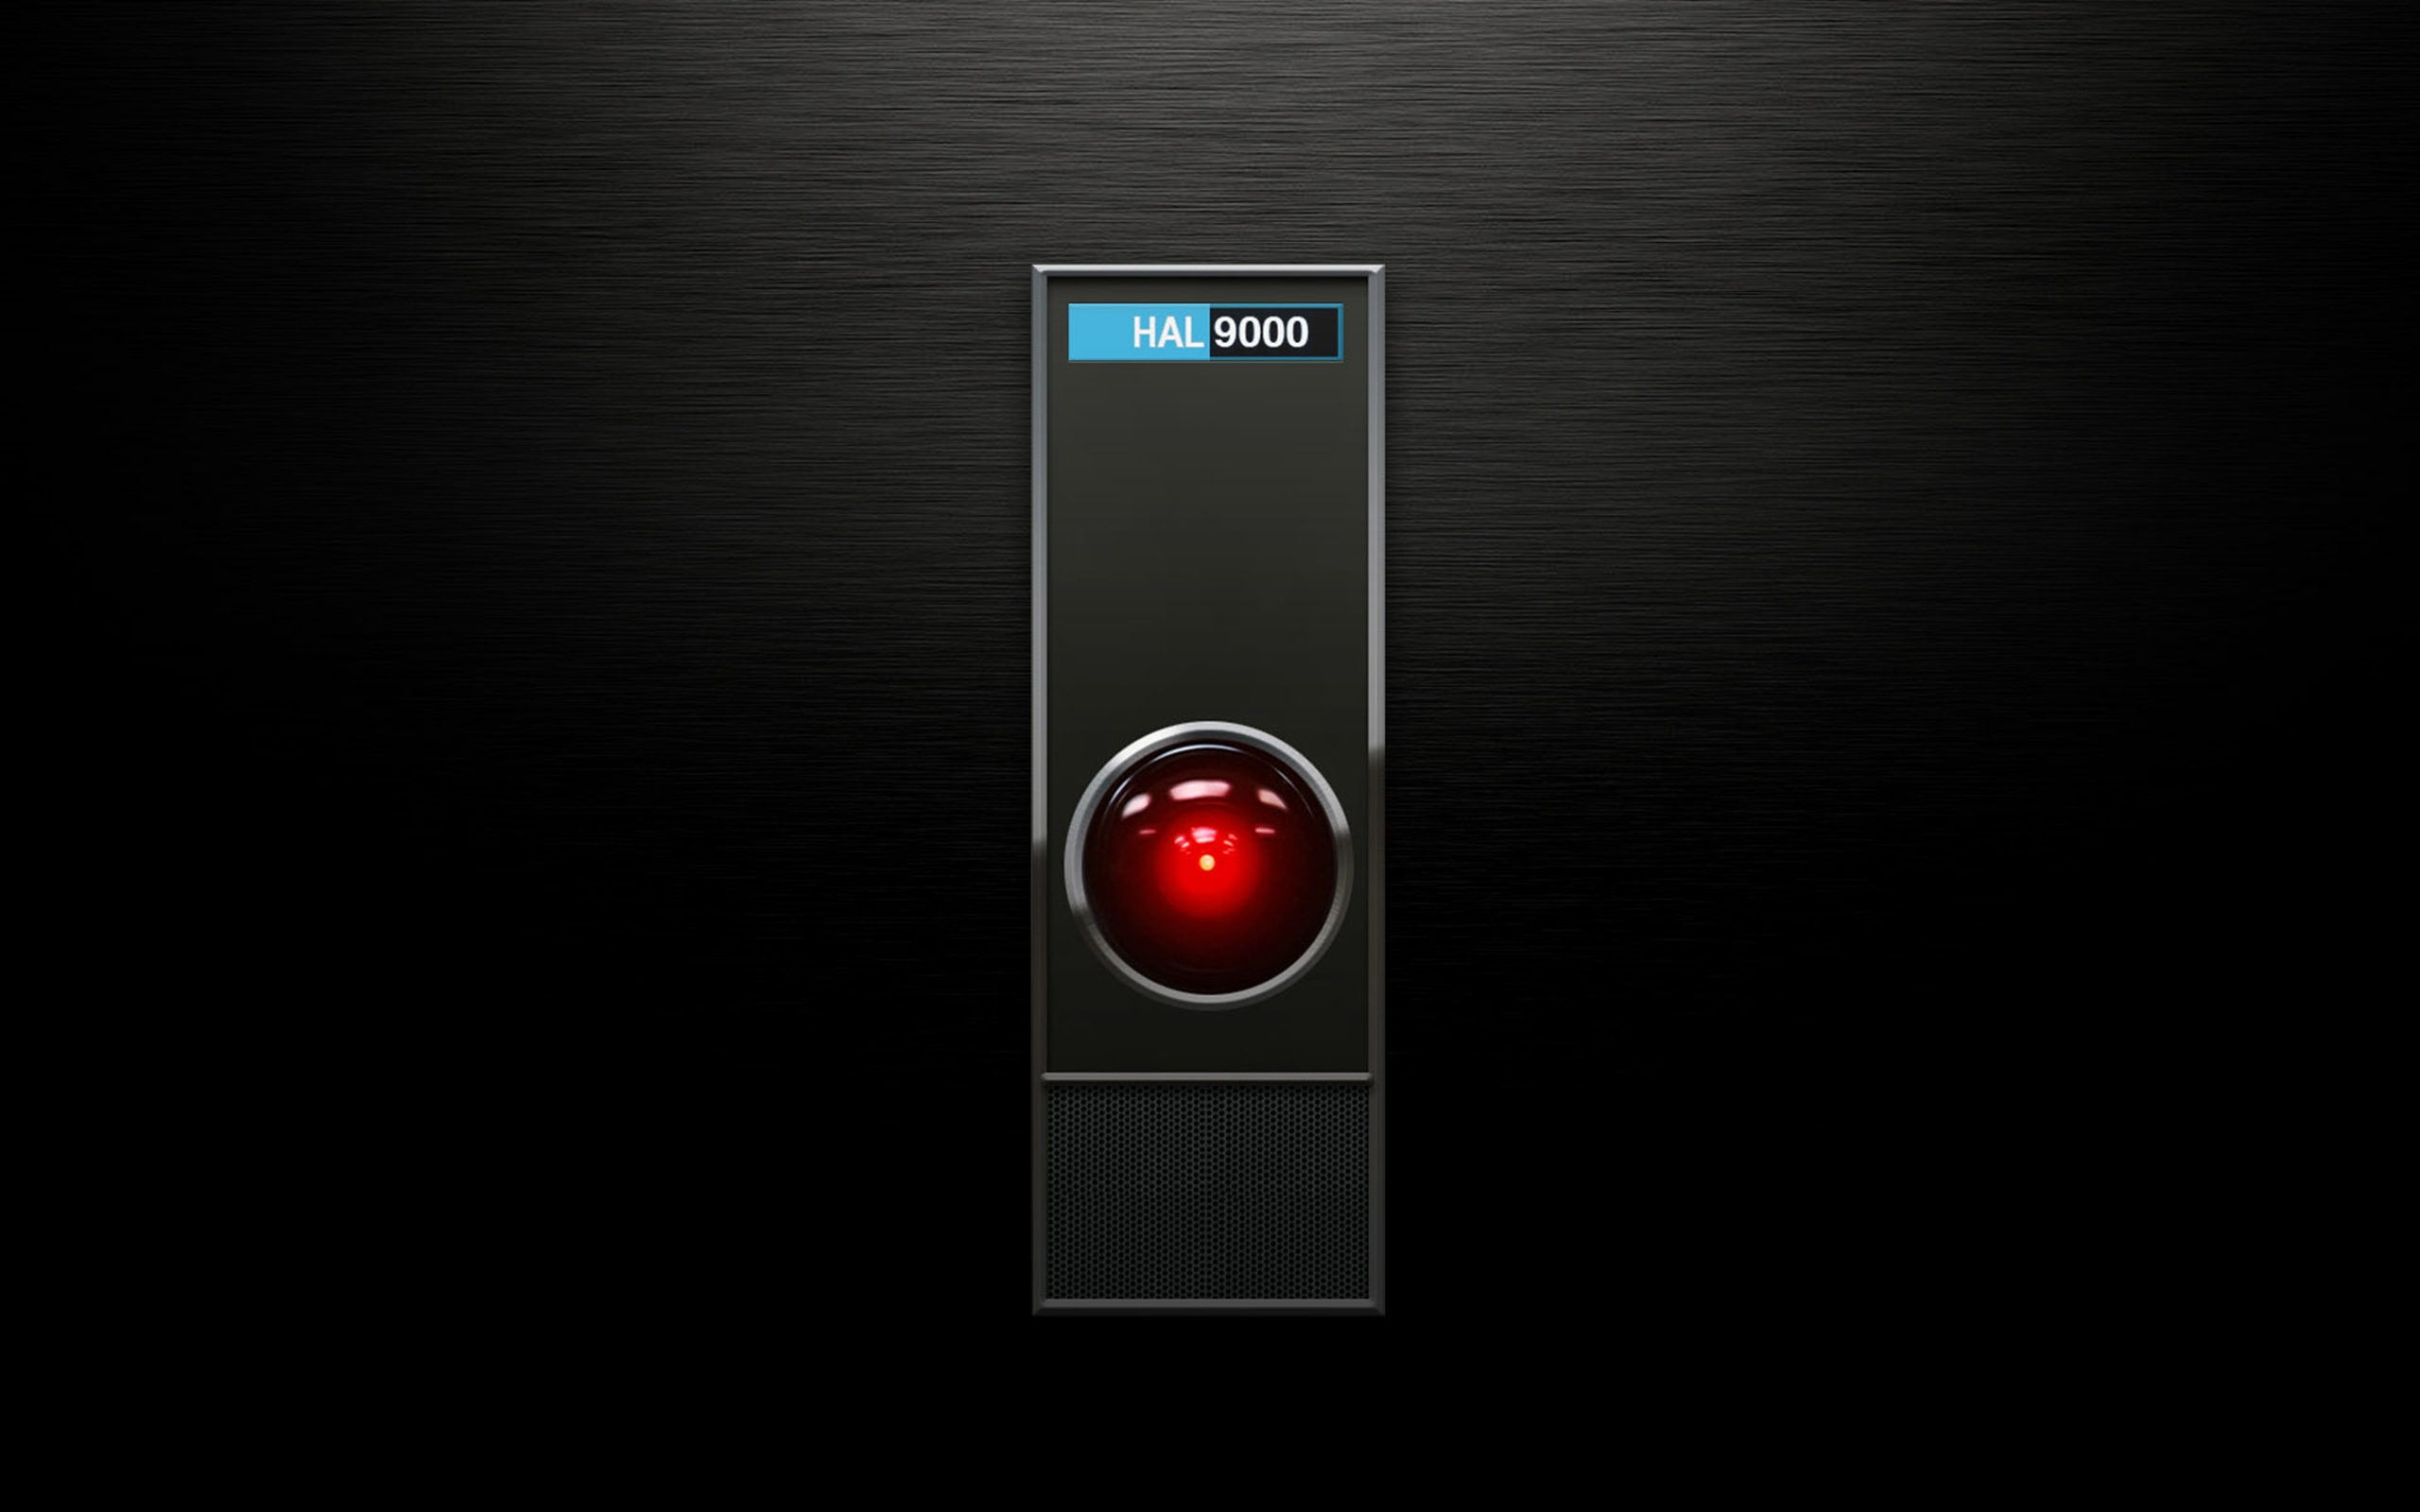 Movie - 2001: A Space Odyssey  - Space Odyssey - Hal - Supercomputer - Evil - Fiction - Movie - Star Trek - 2001 Wallpaper